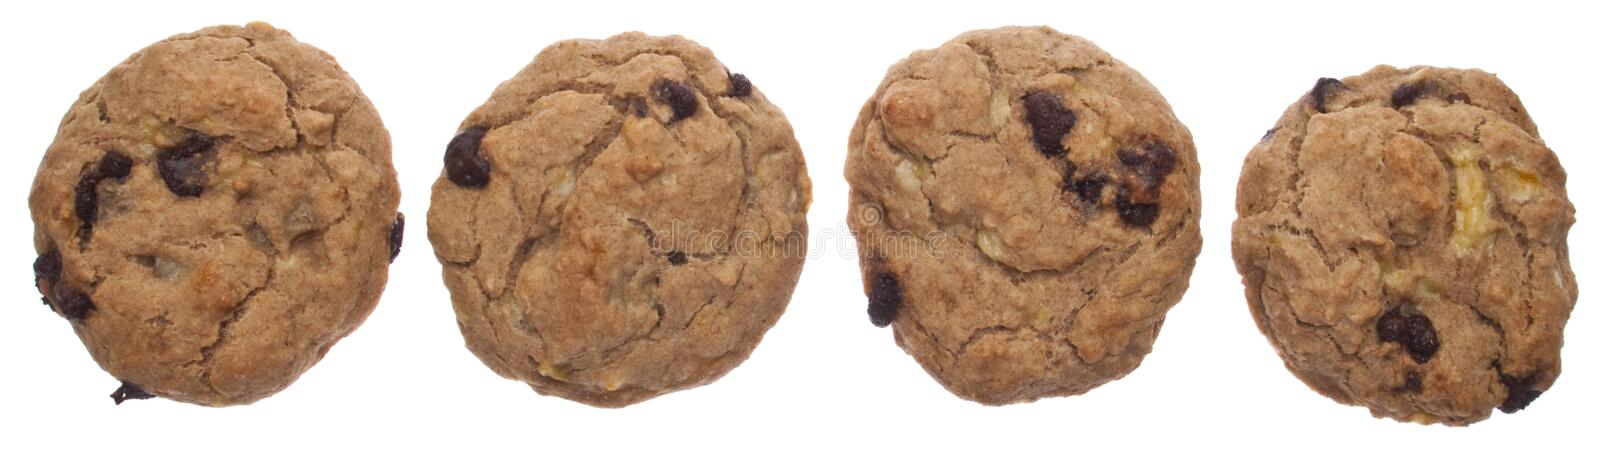 Cookies All in a Row royalty free stock photos